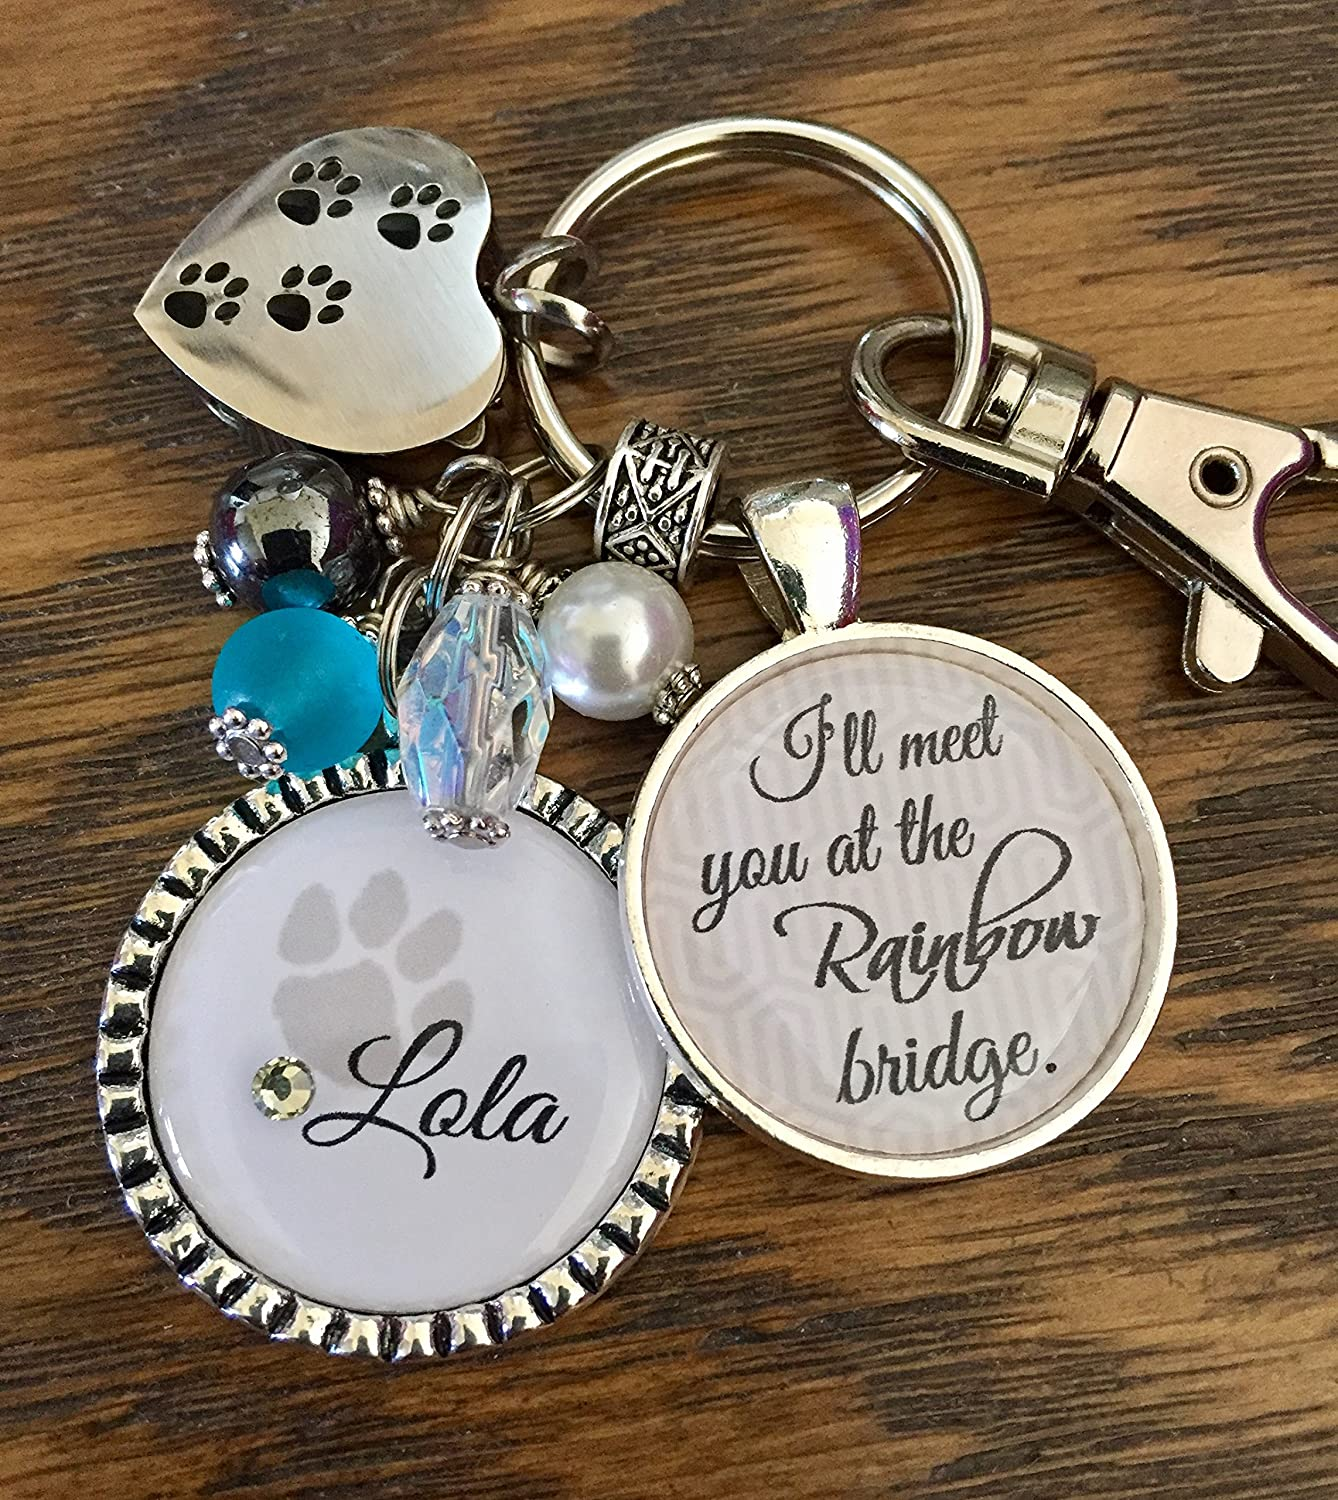 B06ZZDS4P3 Pet Loss Gift Pet Memorial Sympathy Gift Personalized Cremation keychain I'll meet you at the Rainbow bridge Remembrance fur baby A1y5hqsGt0L